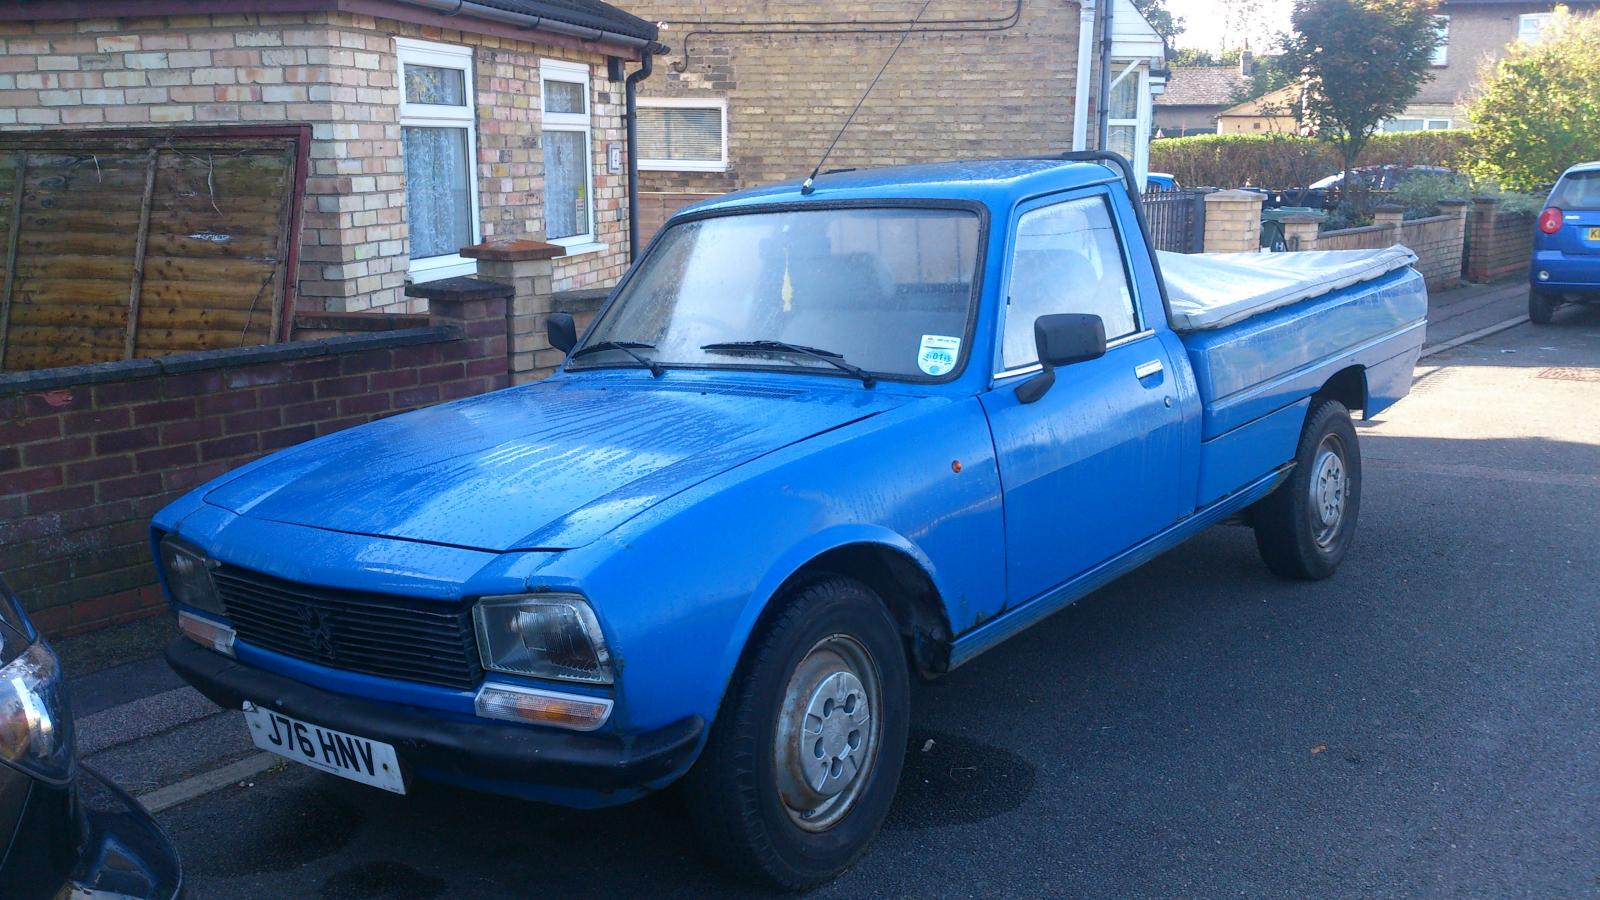 Spotted For Sale - Peugeot 504 Pick Up, St Ives - AutoShite - Autoshite